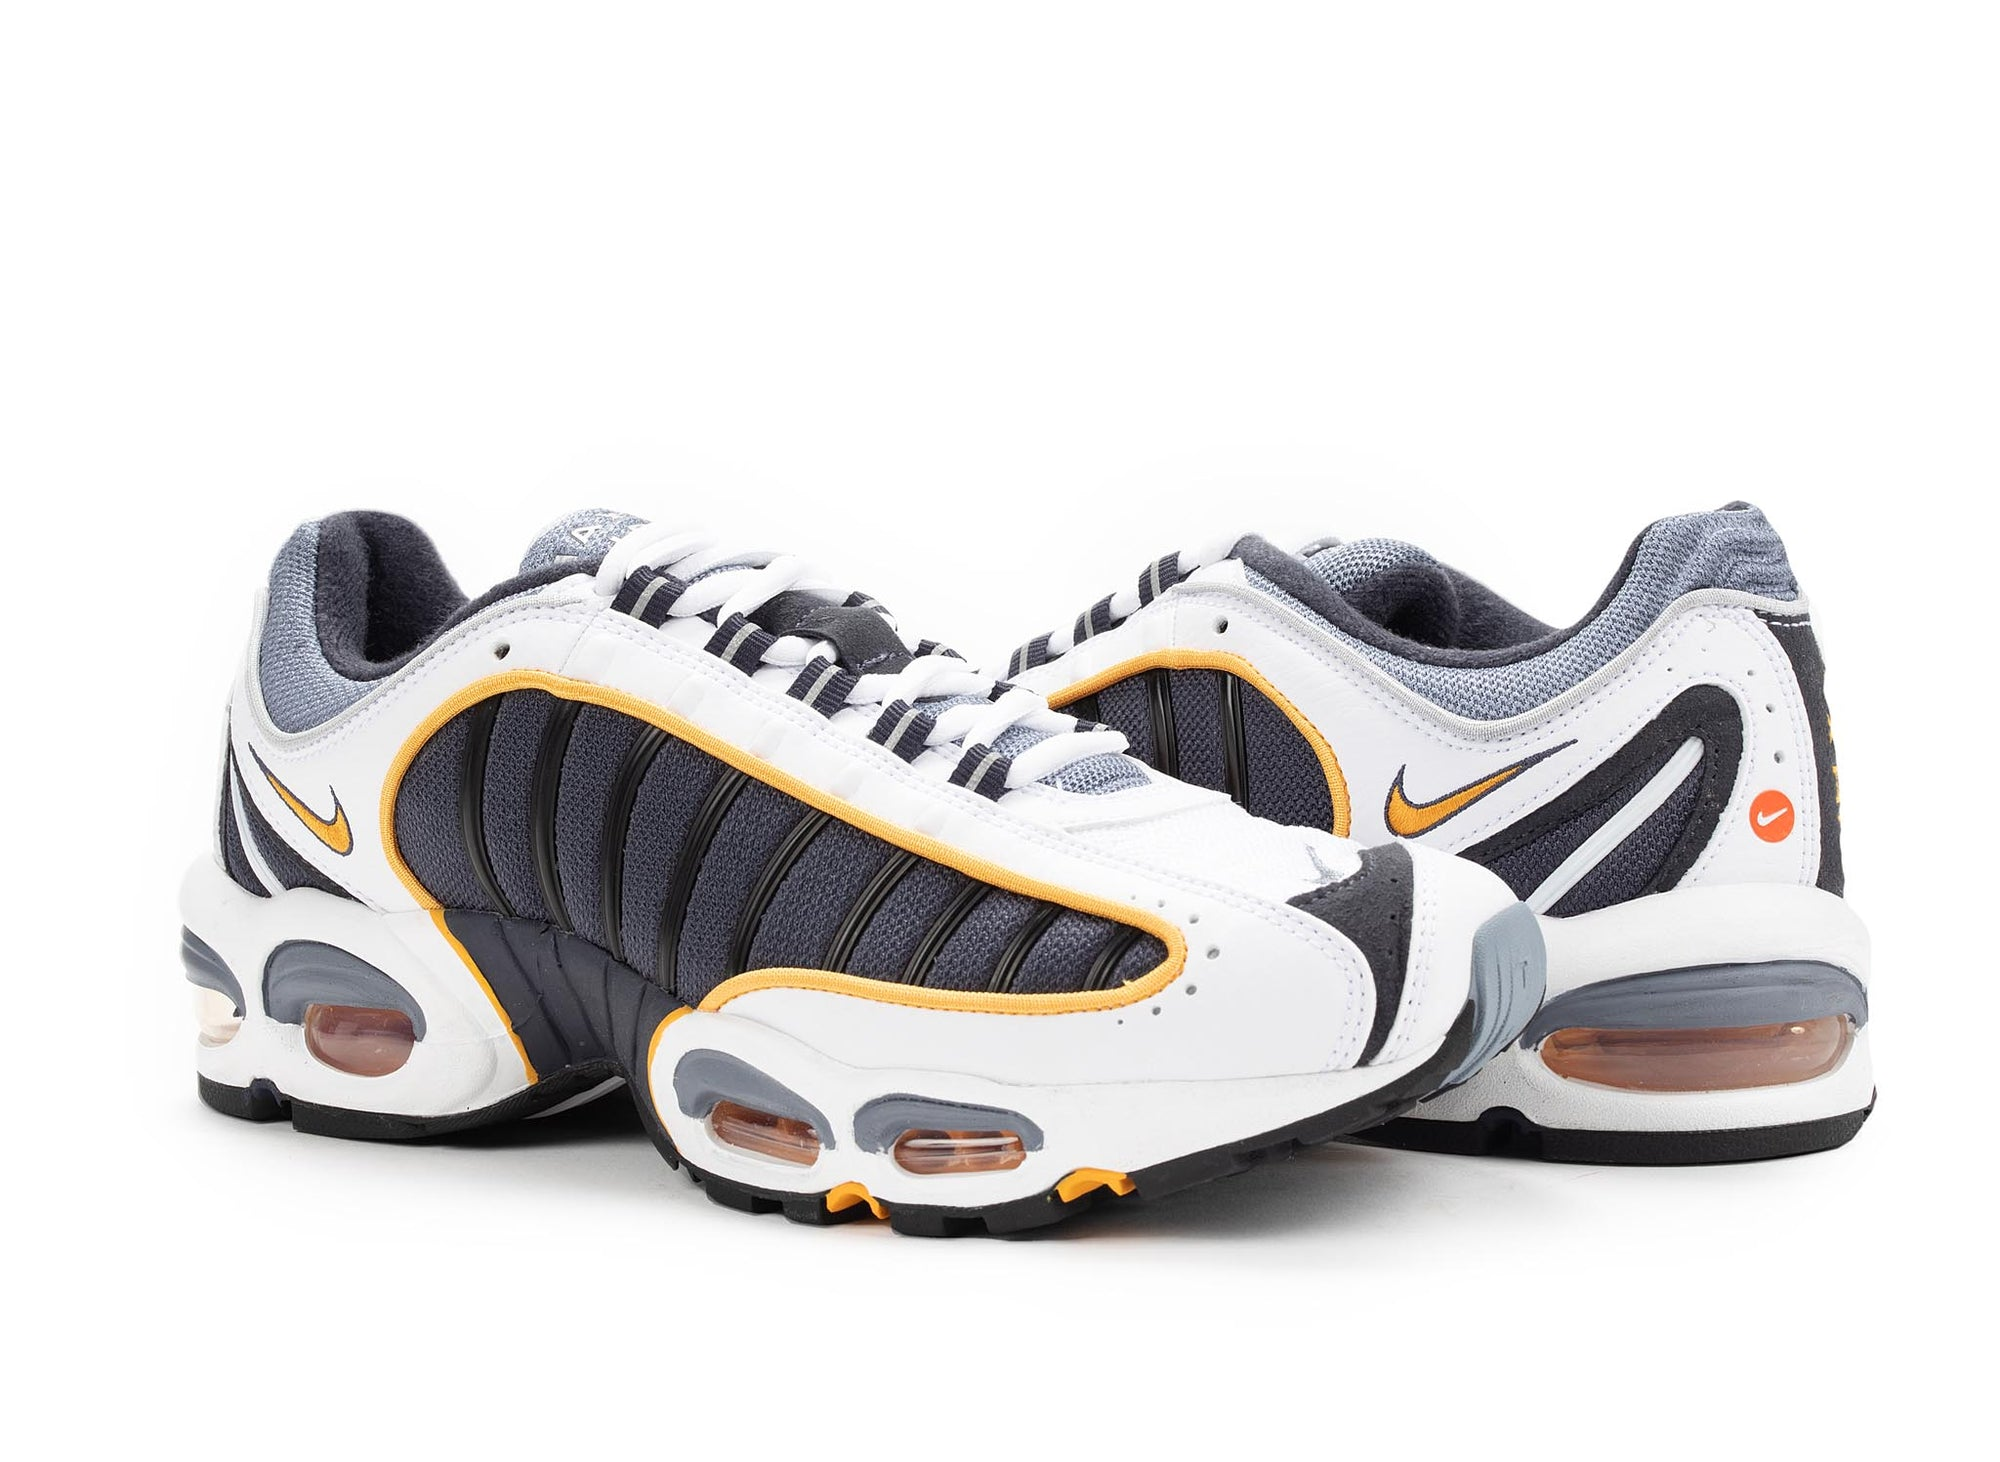 Nike Air Max Tailwind IV 'Machine Grey' Oneness Boutique